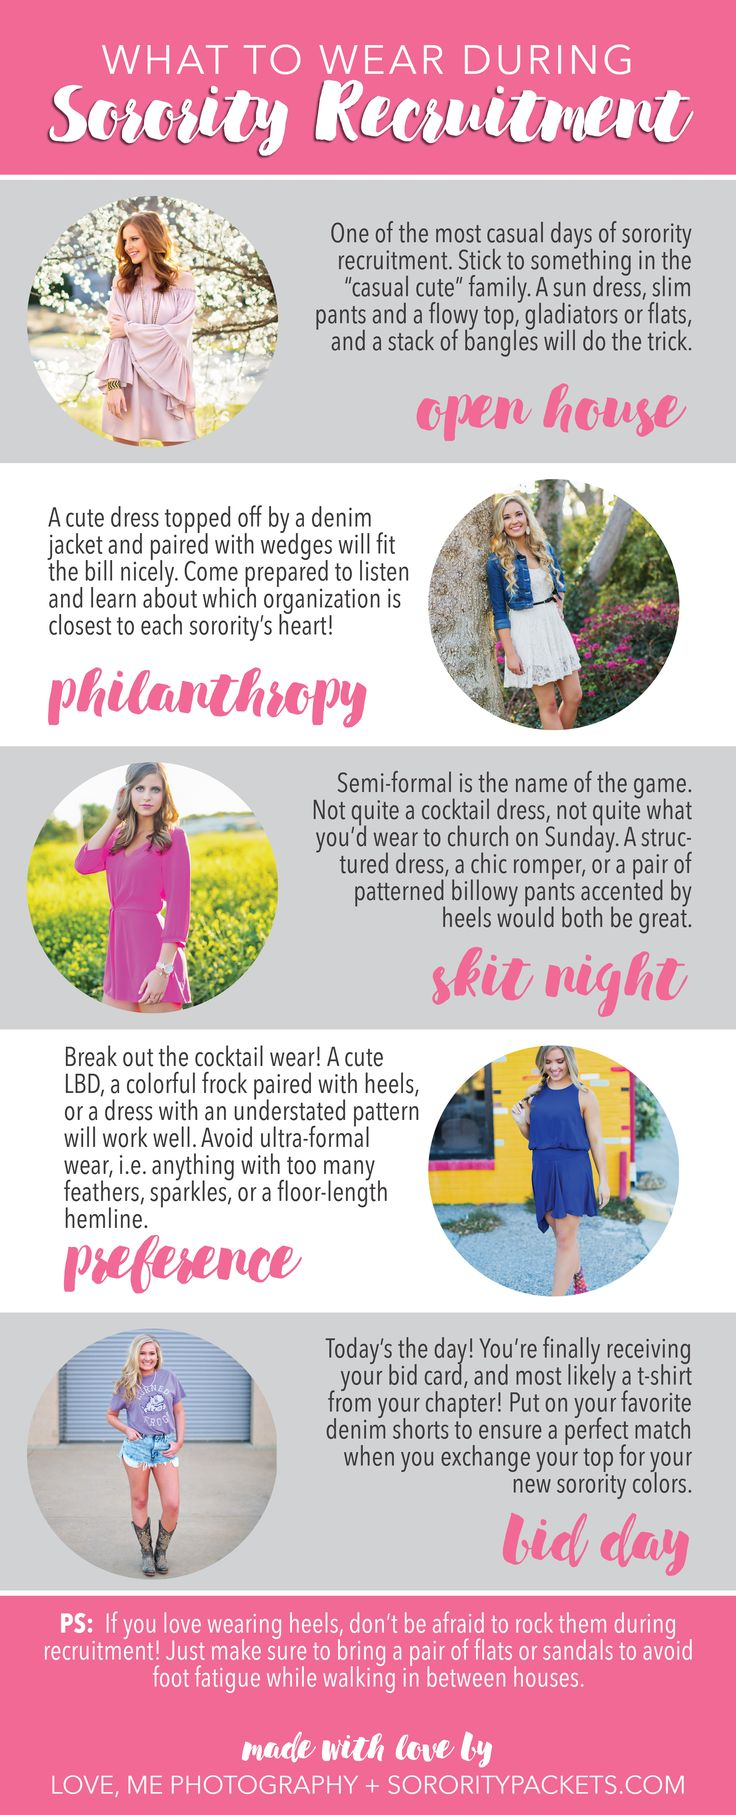 Outfit ideas for each round of sorority recruitment! Made with love by lovemephotography.com + sororitypackets.com